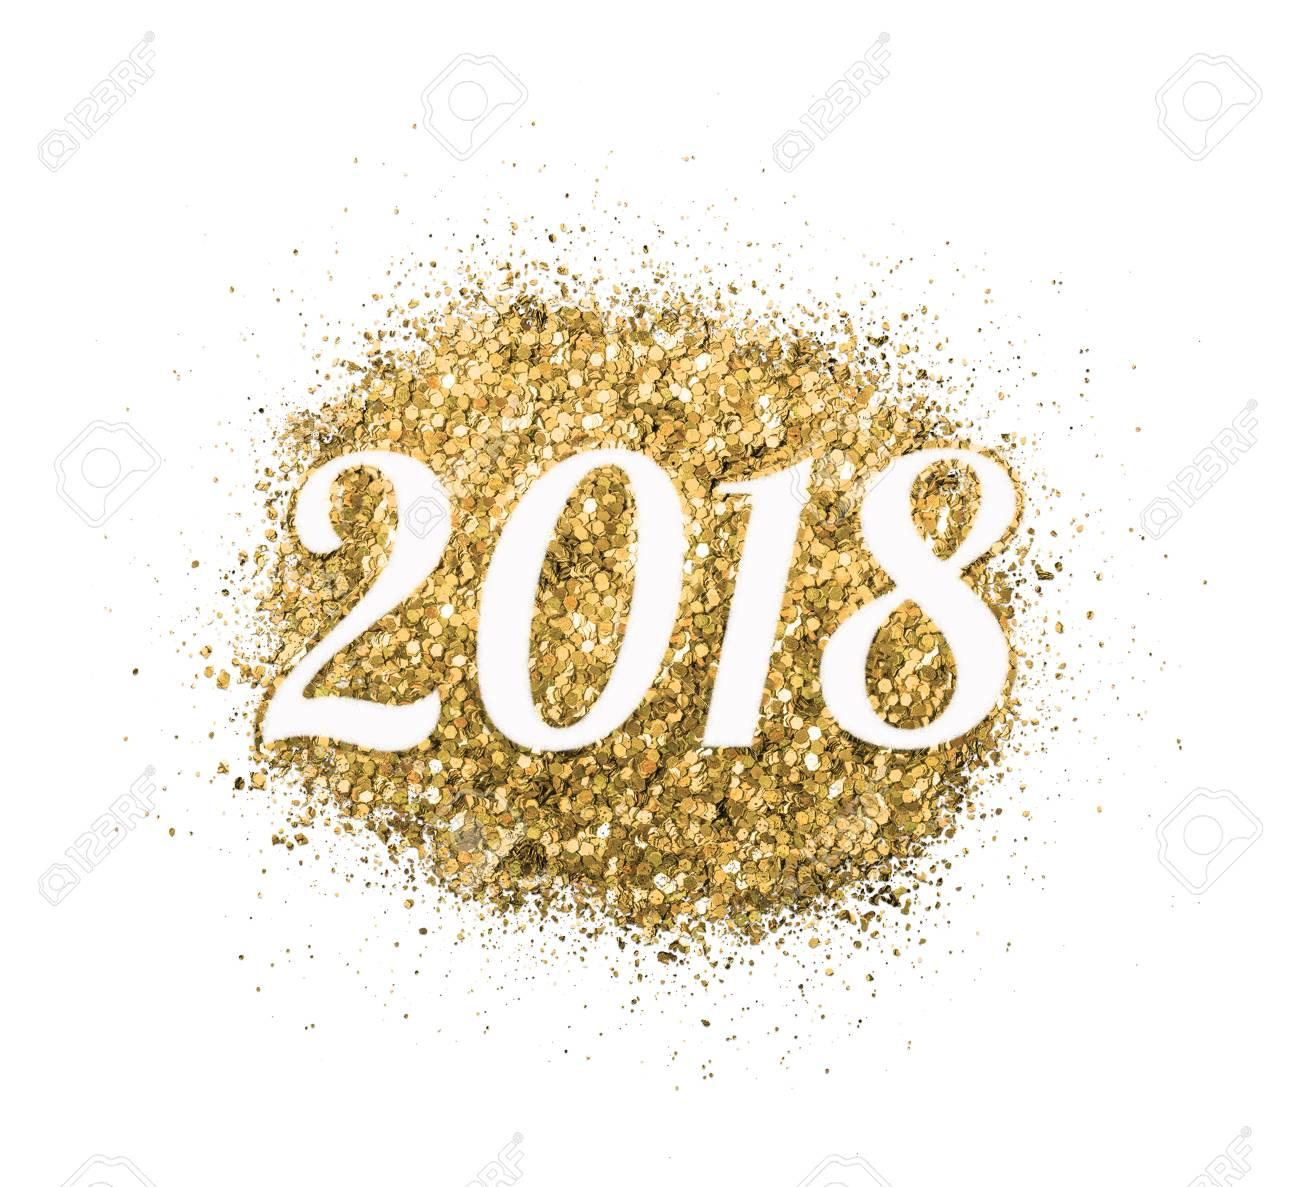 2018 of gold glitter on white background symbol of new year for your greeting card